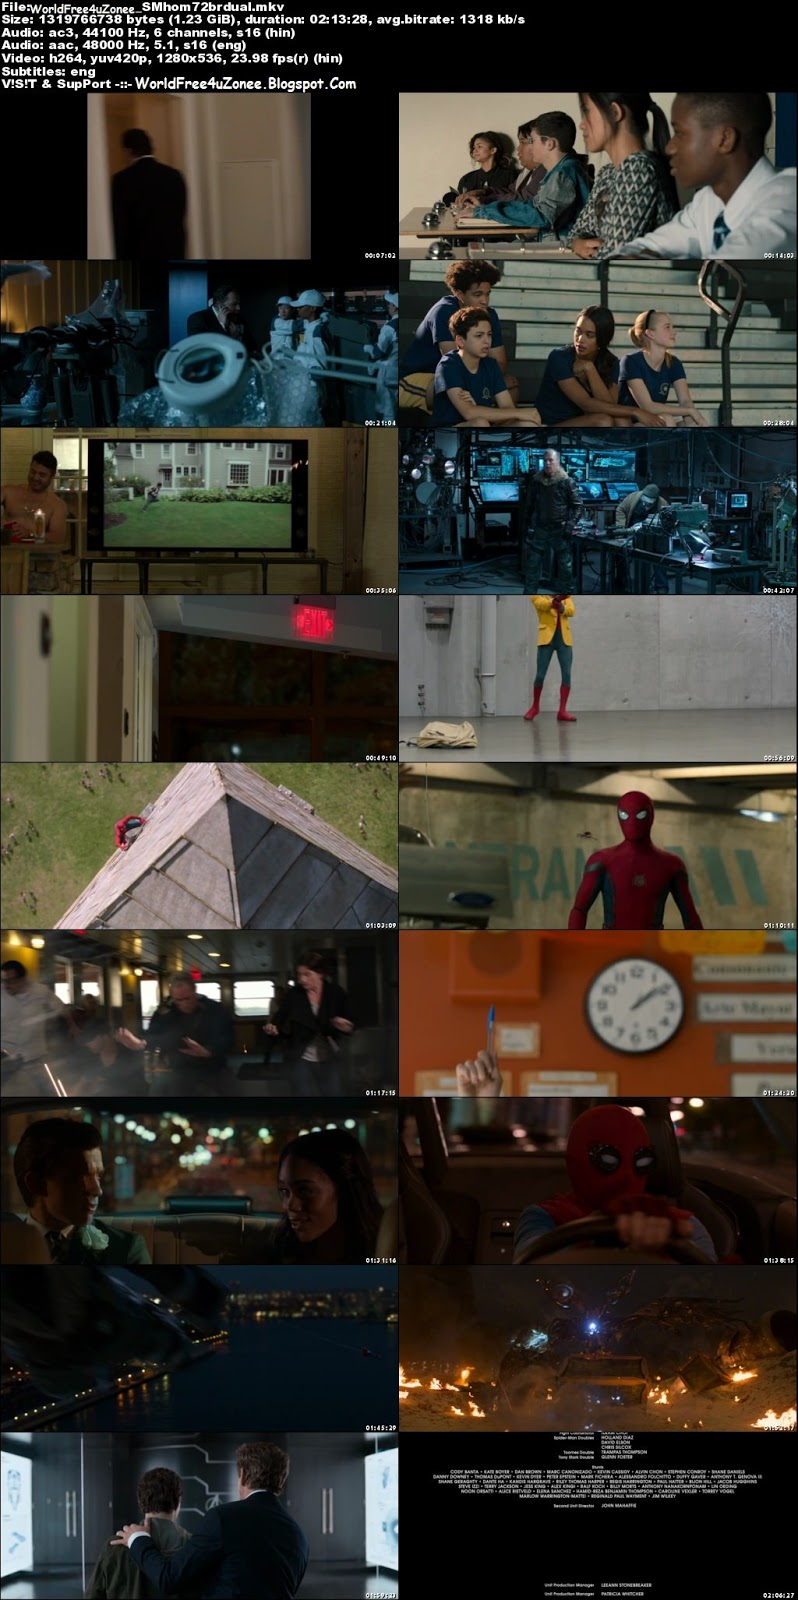 Spider Man Homecoming (2017) Dual Audio BRRip 720p 1.2GB Full Movie Free Download And Watch Online Latest Hollywood Hindi Dubbed Dual Audio 2017 Free At WorldFree4uZonee.Blogspot.Com